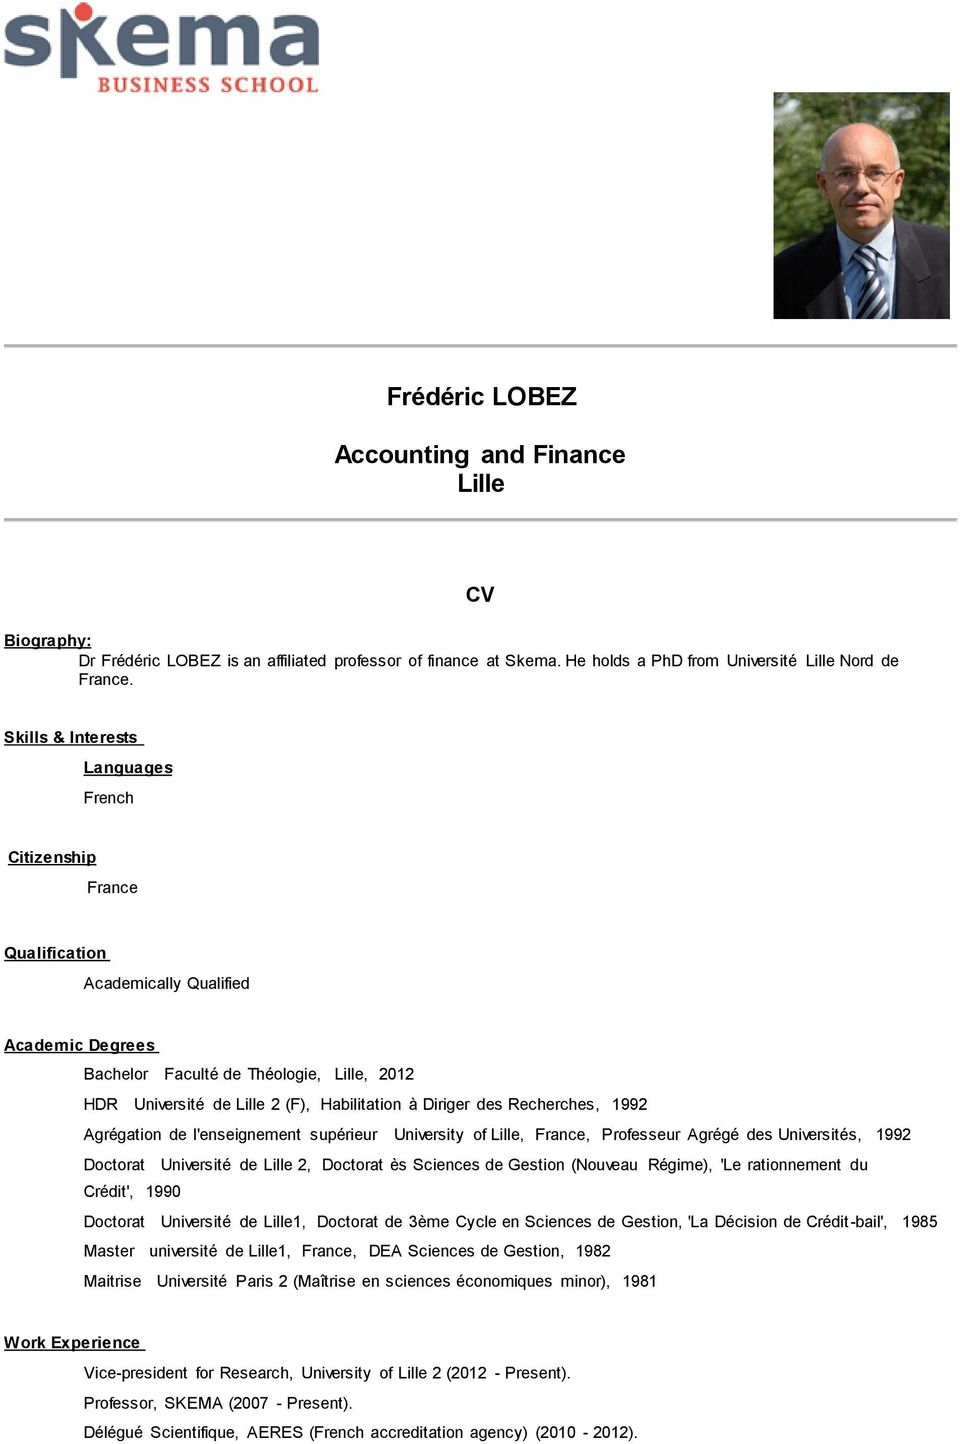 à Diriger des Recherches, 1992 Agrégation de l'enseignement supérieur University of Lille, France, Professeur Agrégé des Universités, 1992 Doctorat Université de Lille 2, Doctorat ès Sciences de